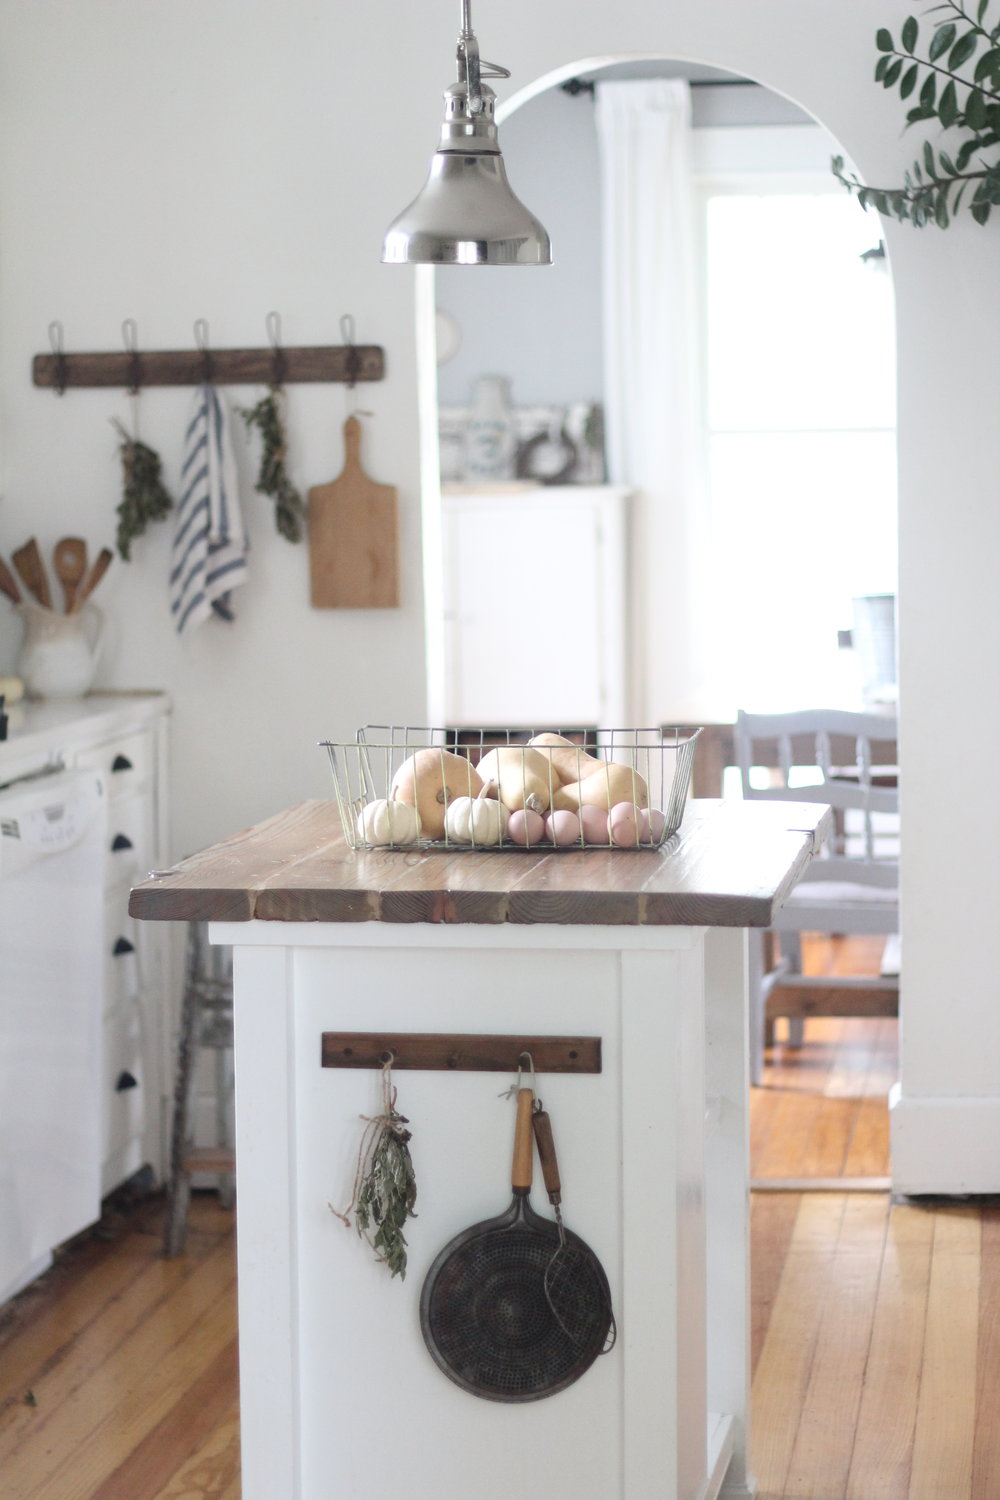 Simple ways to add farmhouse style to any kitchen for Simple farmhouse